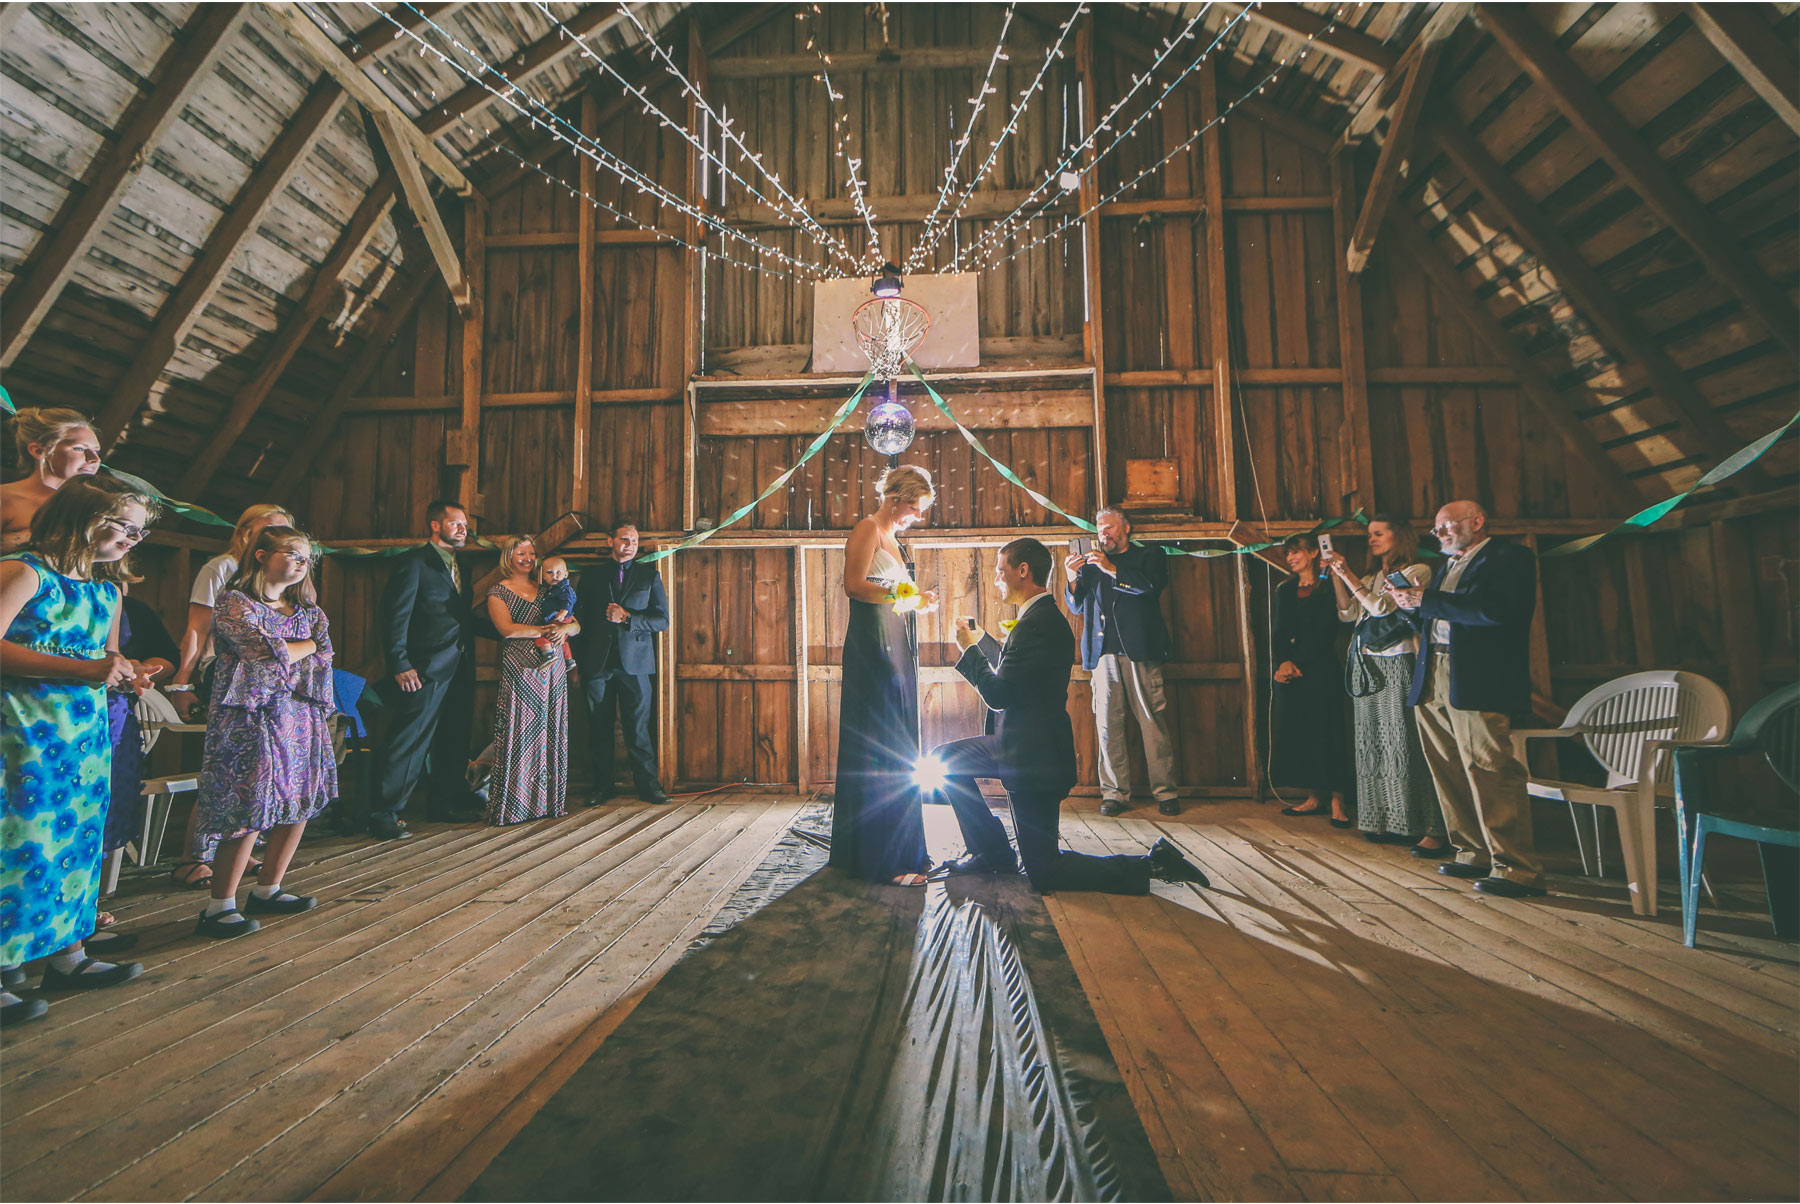 10-Vick-Photography-Proposal-Session-Engagement-Family-Farm-Prom-Dance-Barn-Say-Yes-Kasie-and-Josh.jpg